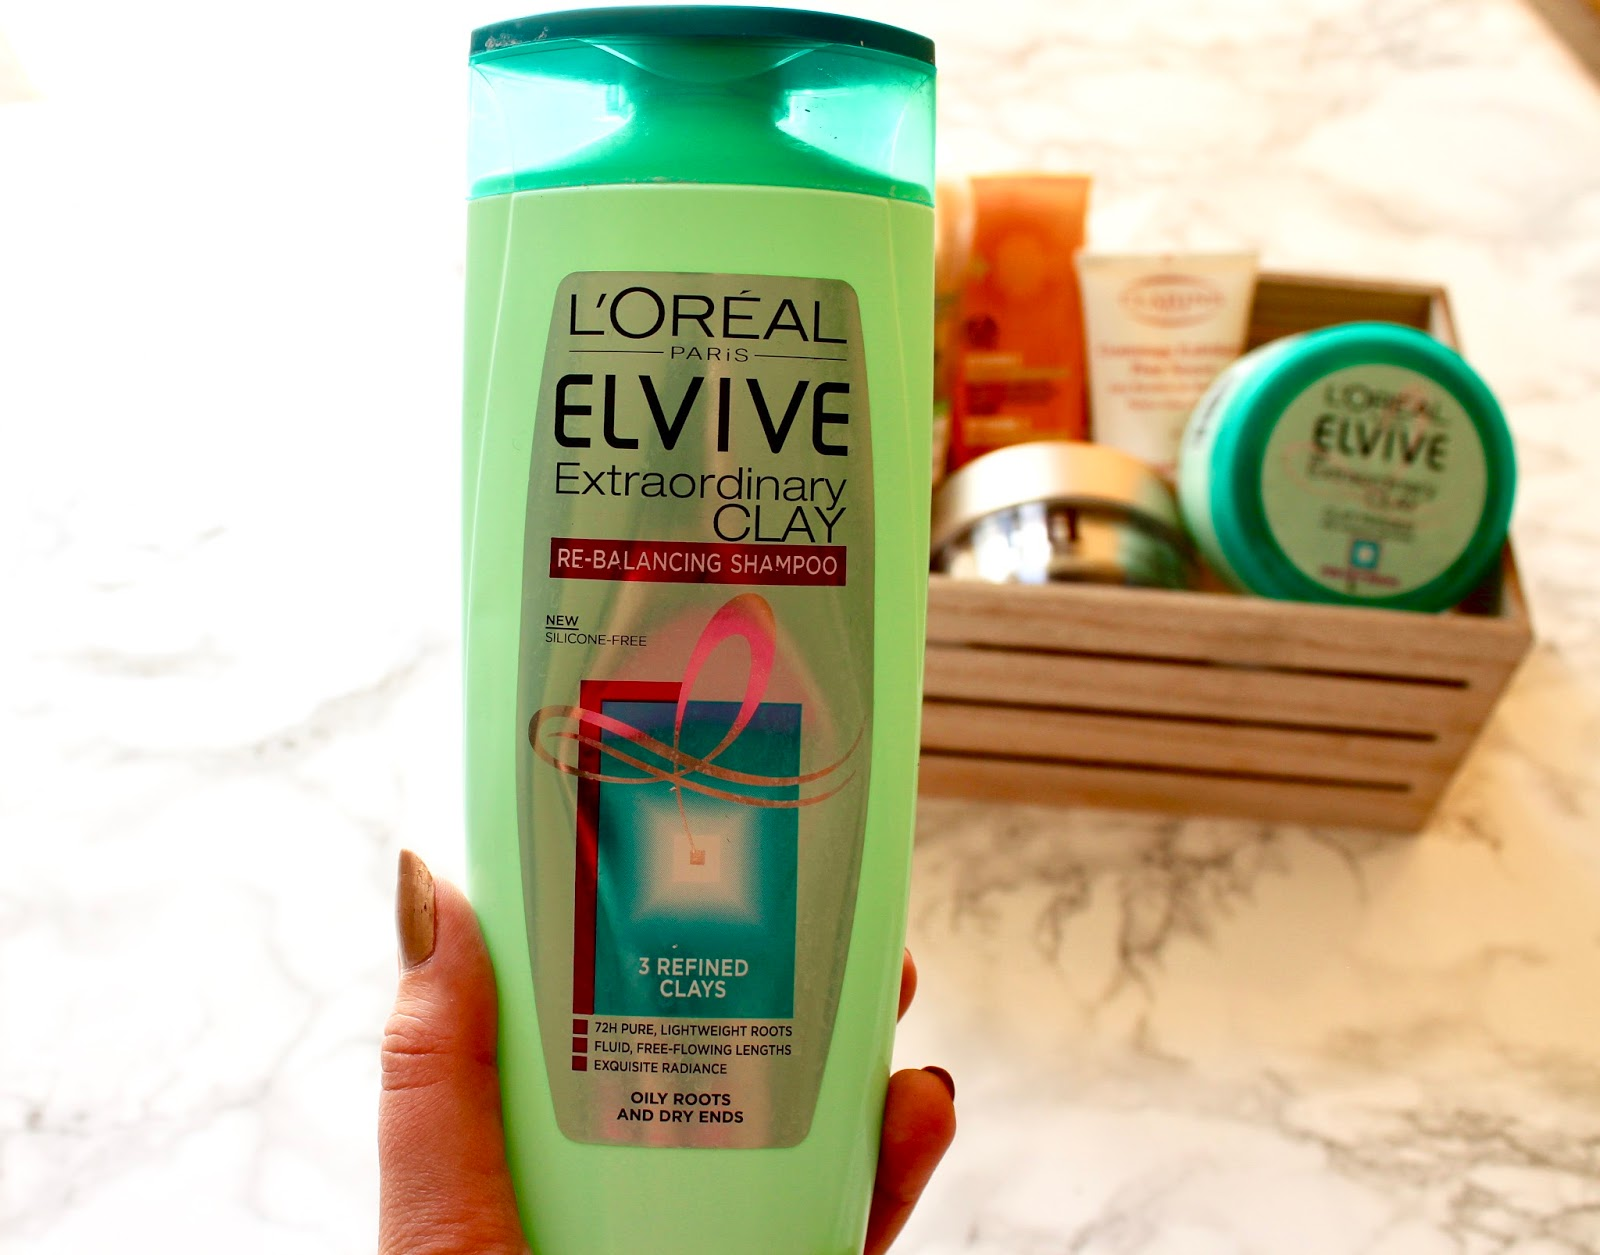 Empties L'Oreal Elvive Extraordinary Clan Re-Balancing Shampoo